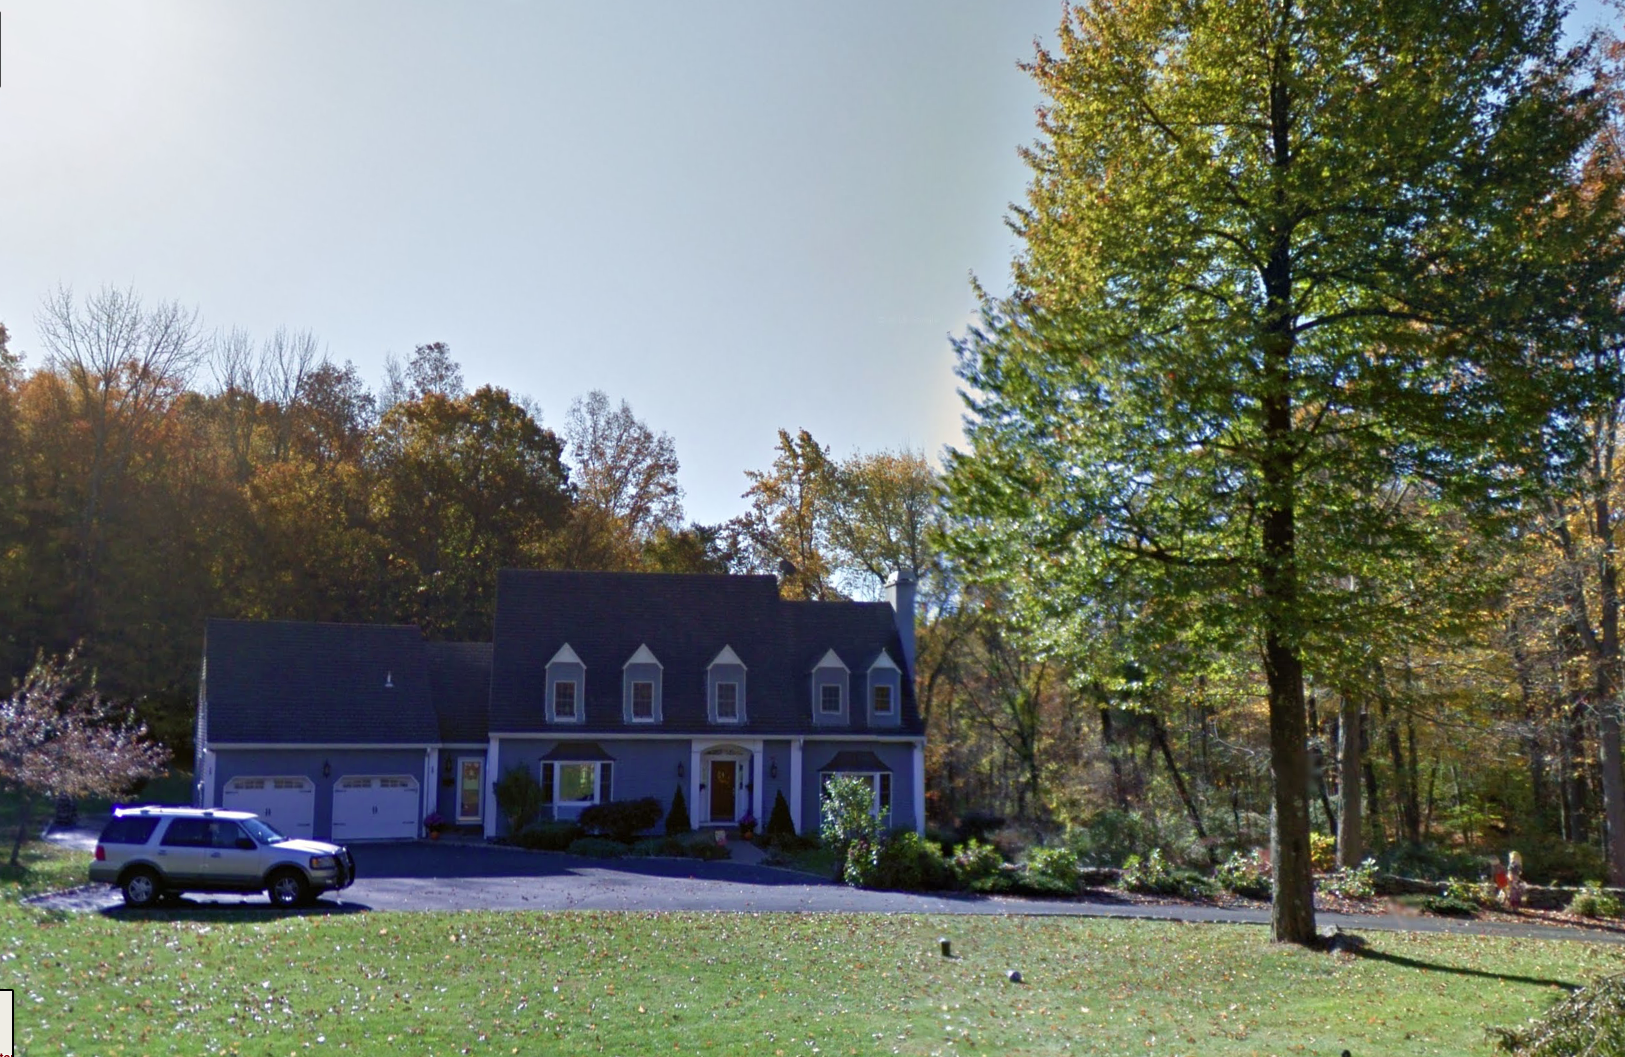 The $800,000 home in Westchester County that Joseph Percoco and his wife bought in July 2012.